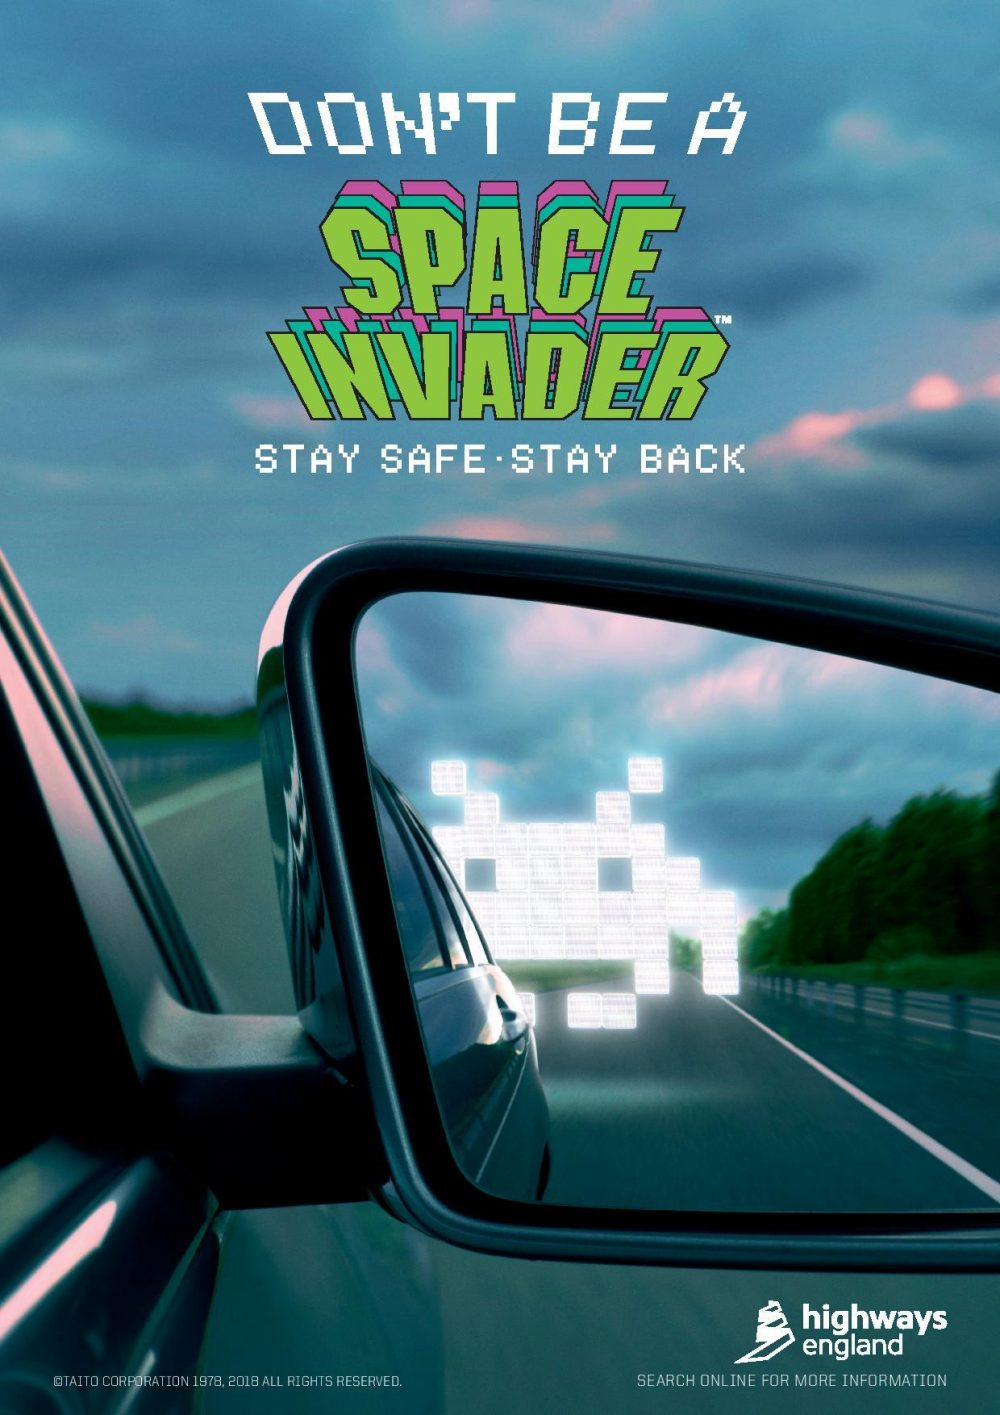 The 'Don't be a Space Invader - stay safe, stay back' campaign.